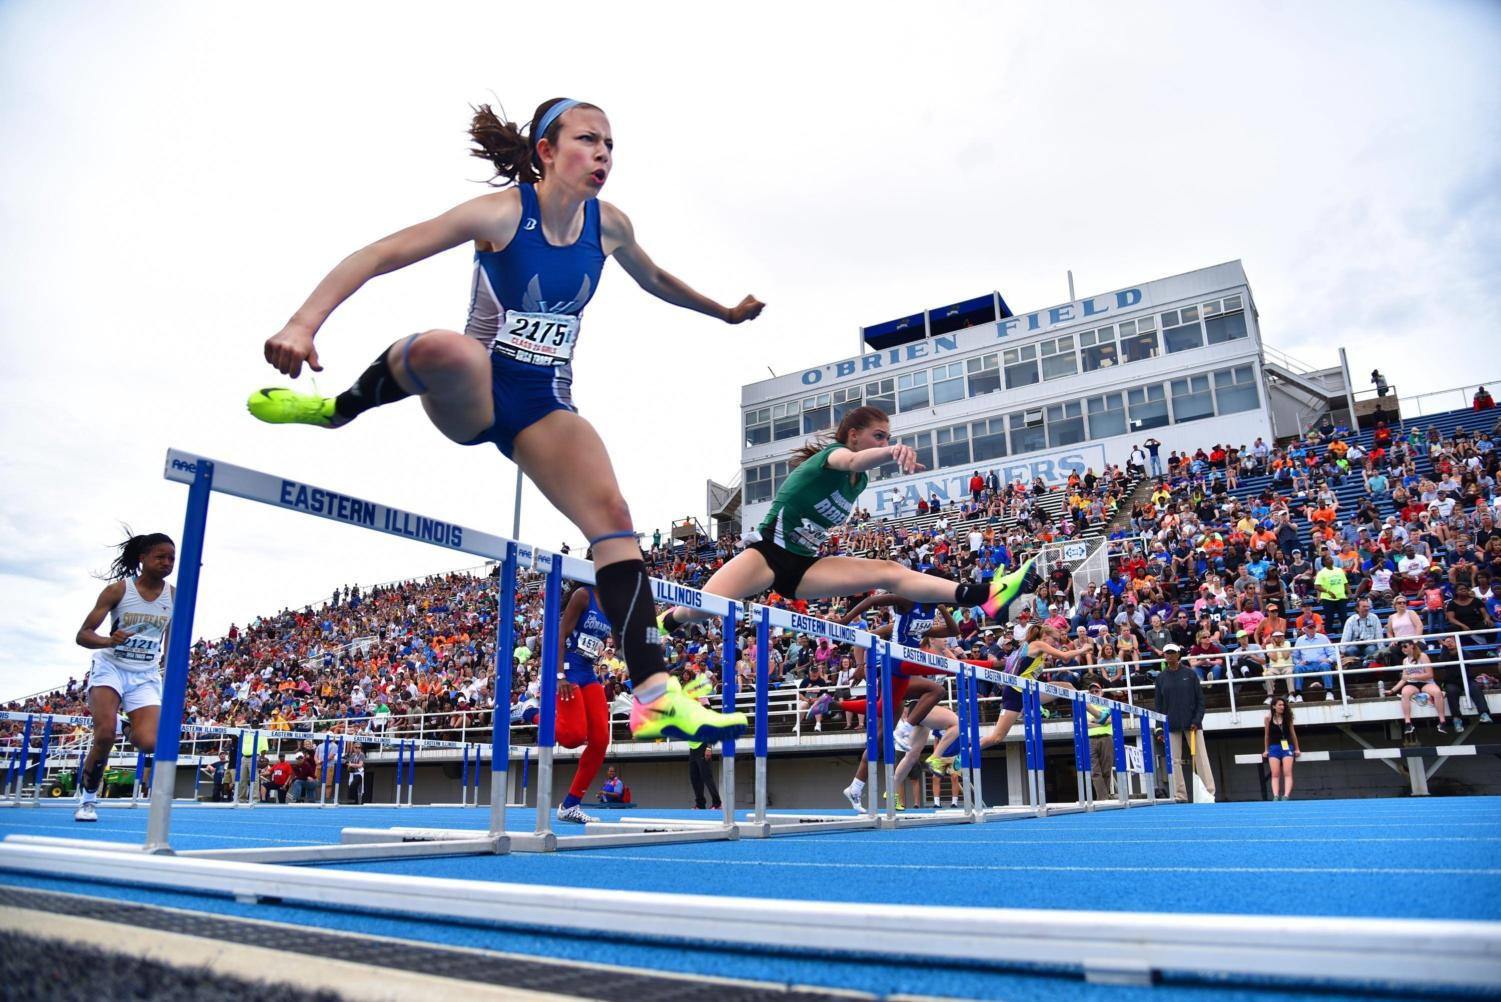 Bunning placed second for the 100-meter hurdle races at state in 2017. Her time was 14.62 seconds.